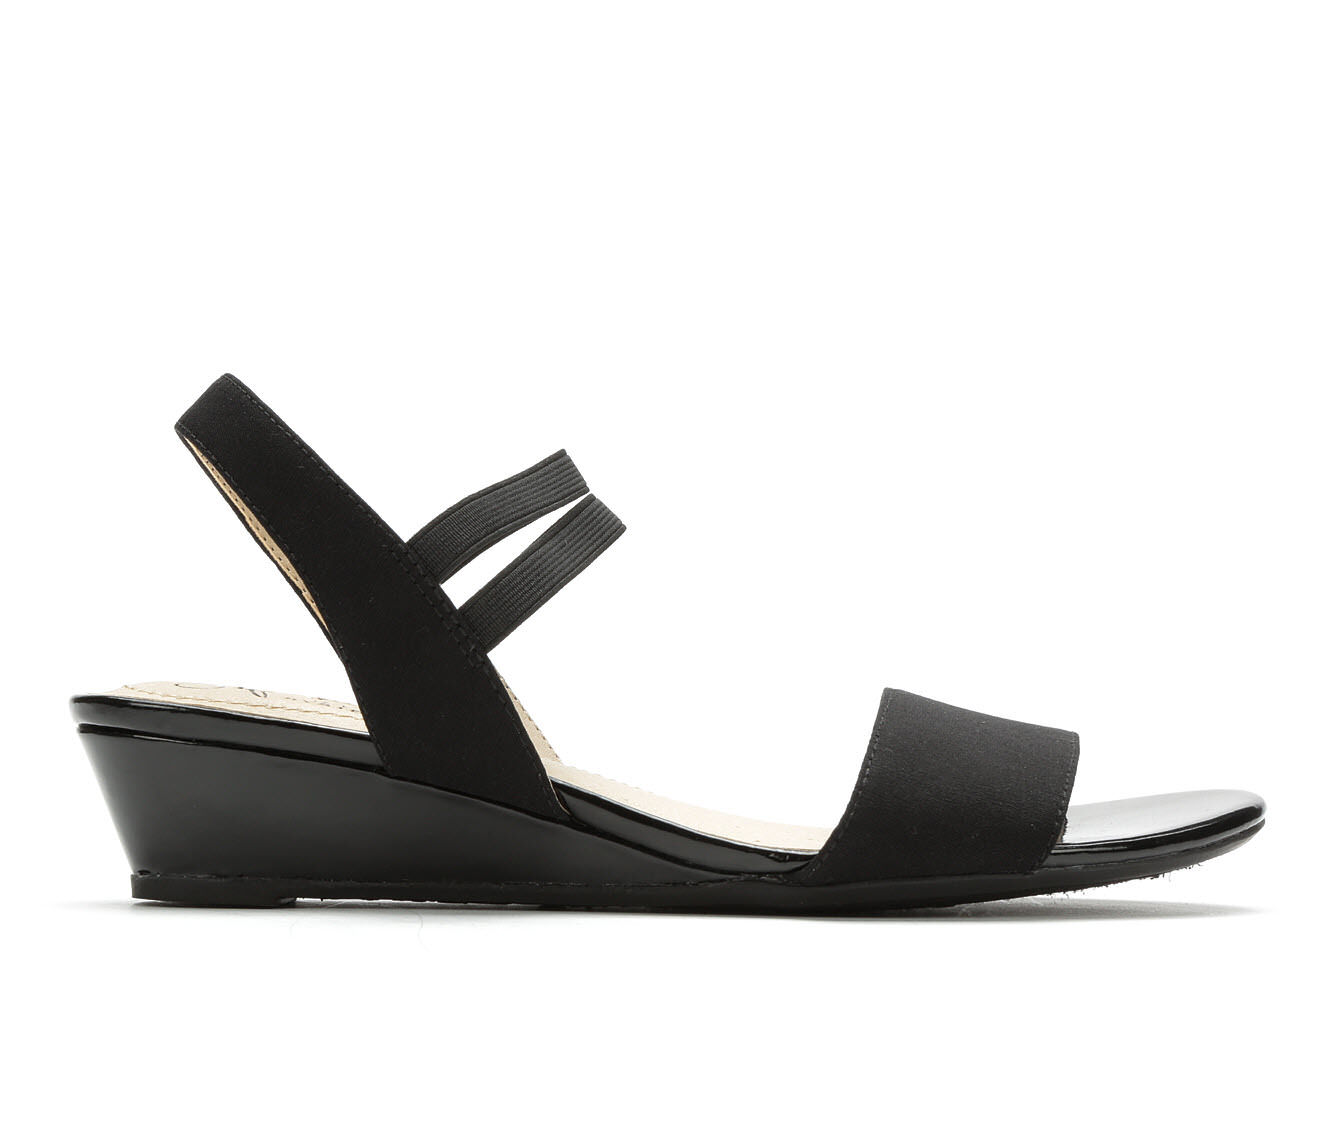 LifeStride Yolo Women's Wedge ... Sandals pRNVk